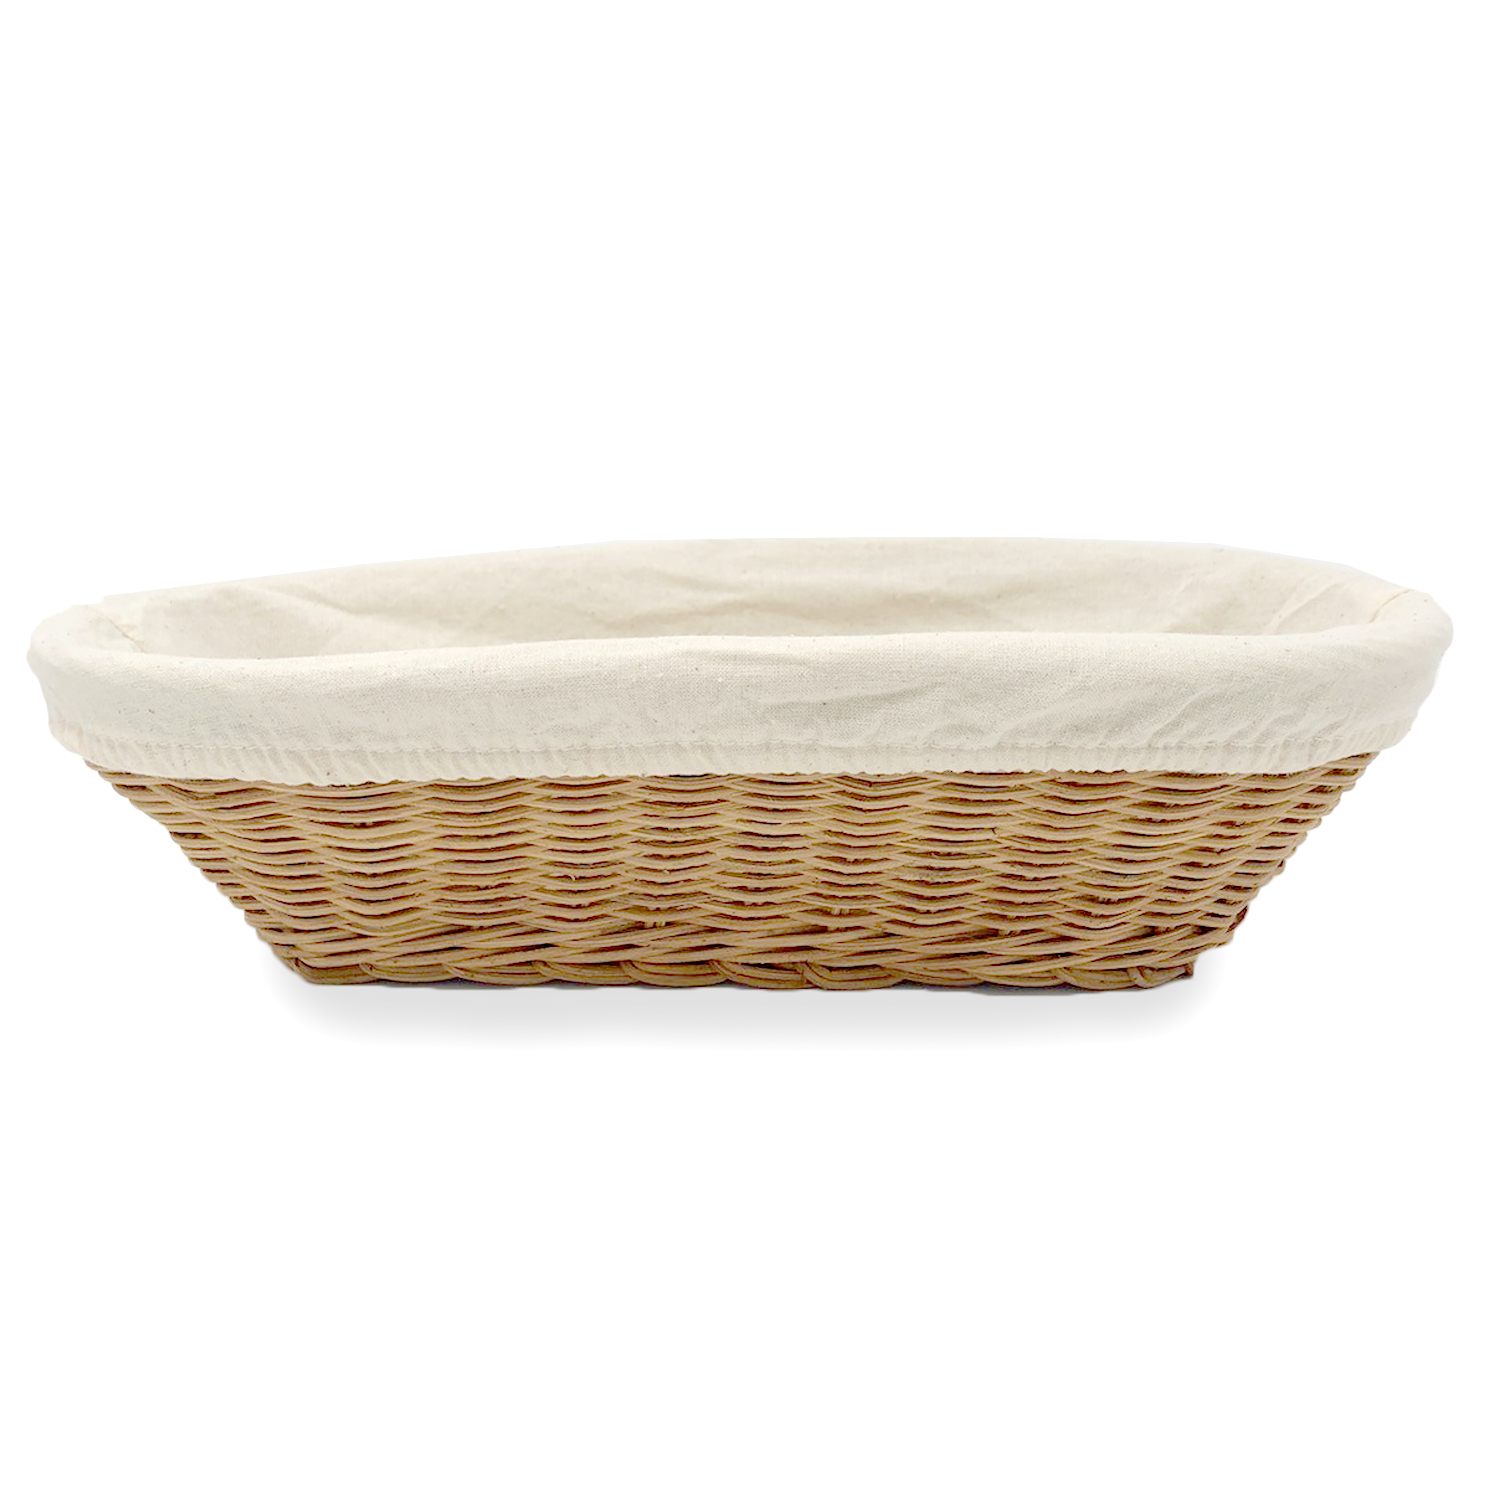 Slim Oval Rattan Utility Basket with Cloth Liner 12in